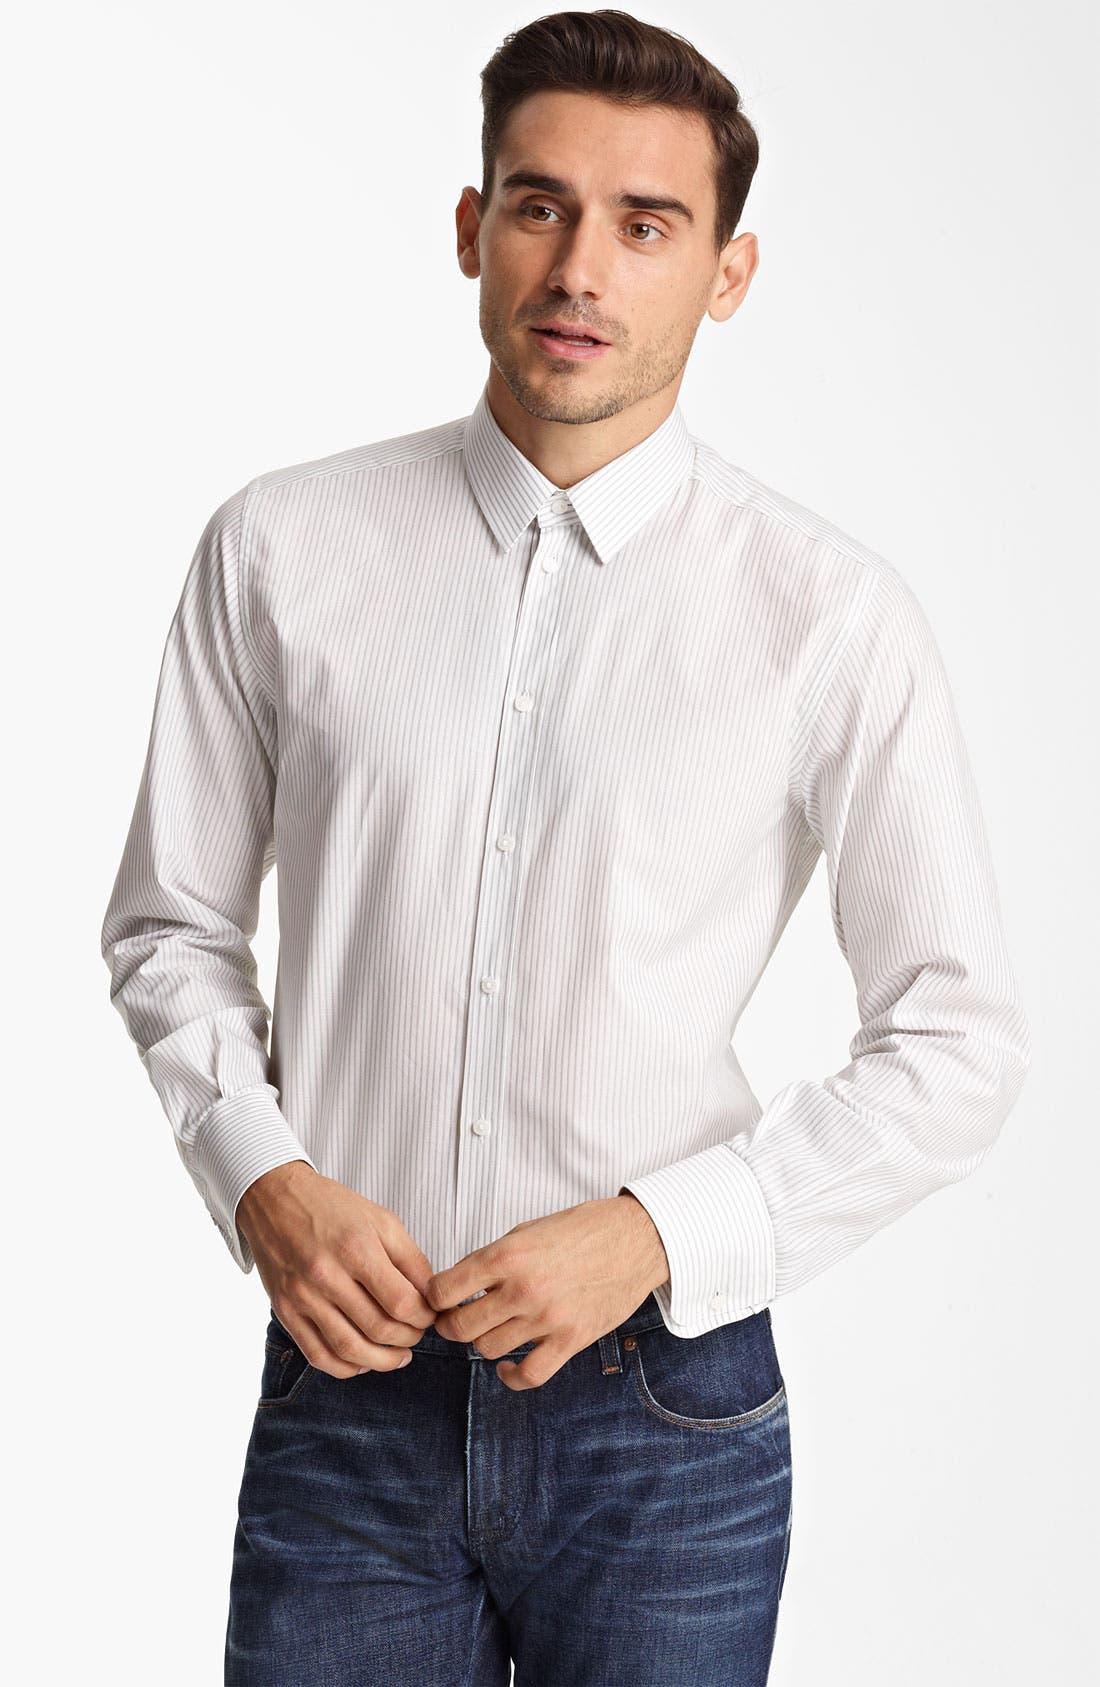 Alternate Image 1 Selected - Dolce&Gabbana Stripe Dress Shirt